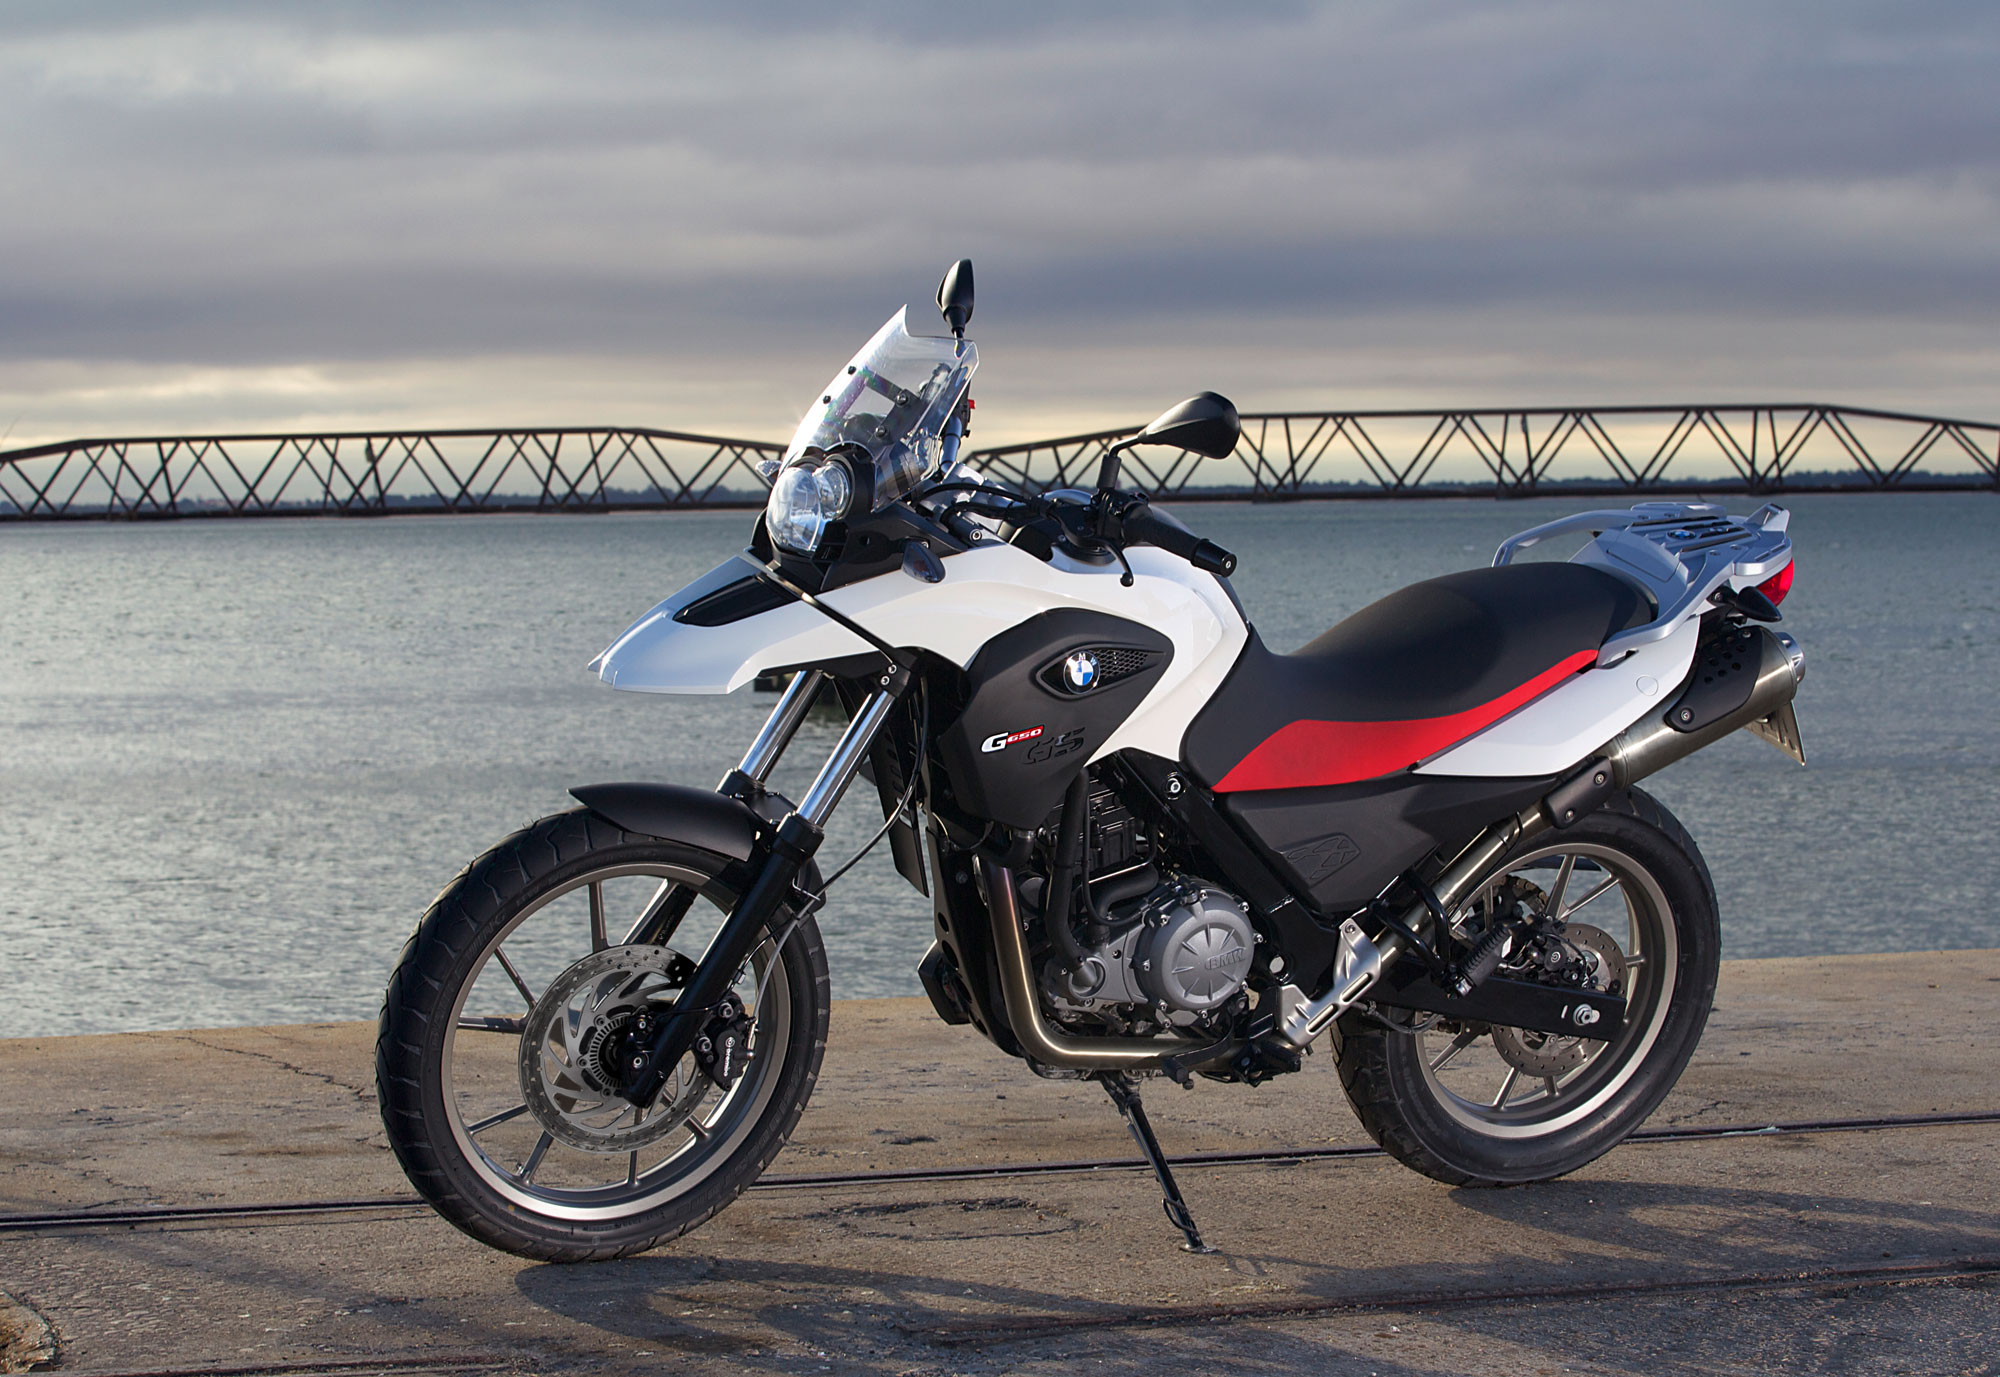 BMW G 650 GS 2011 images #8389